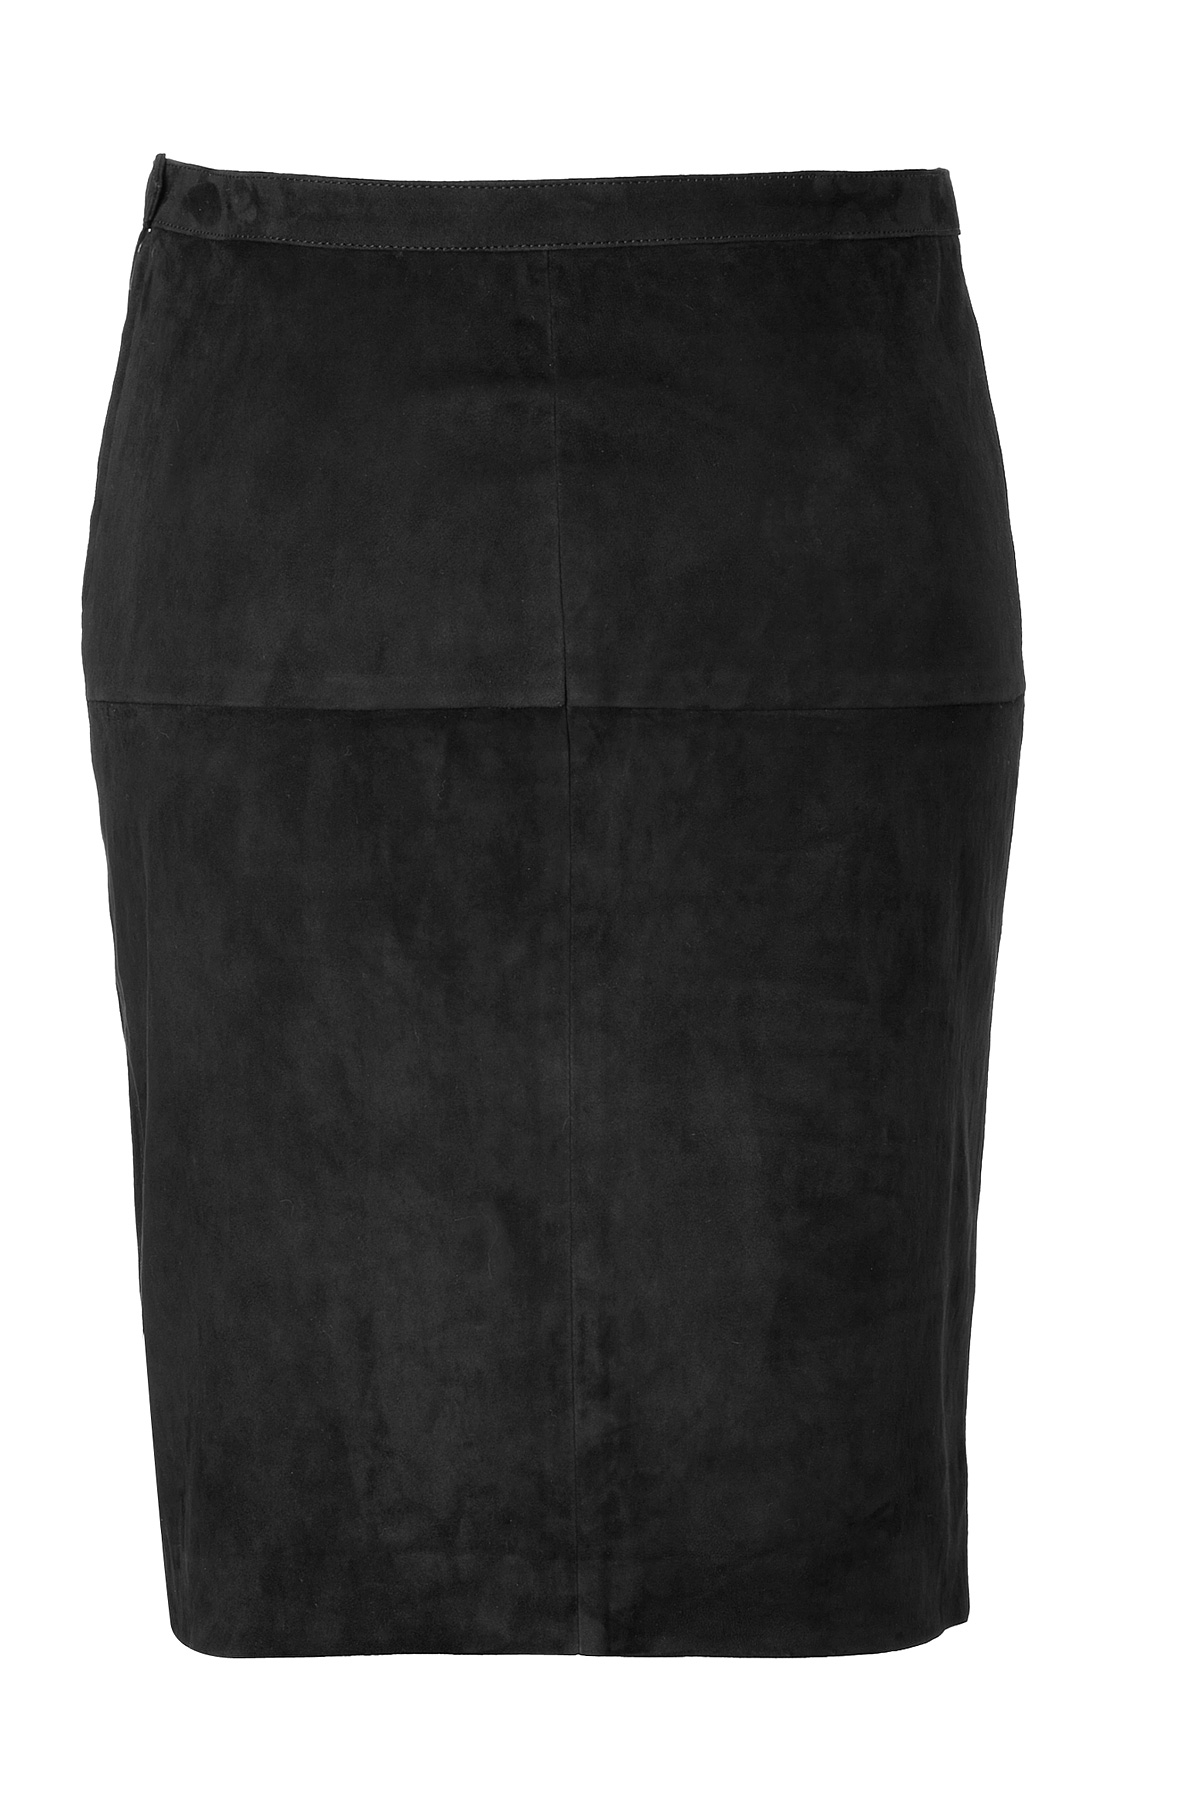 Lyst - Closed Suede Pencil Skirt in Black